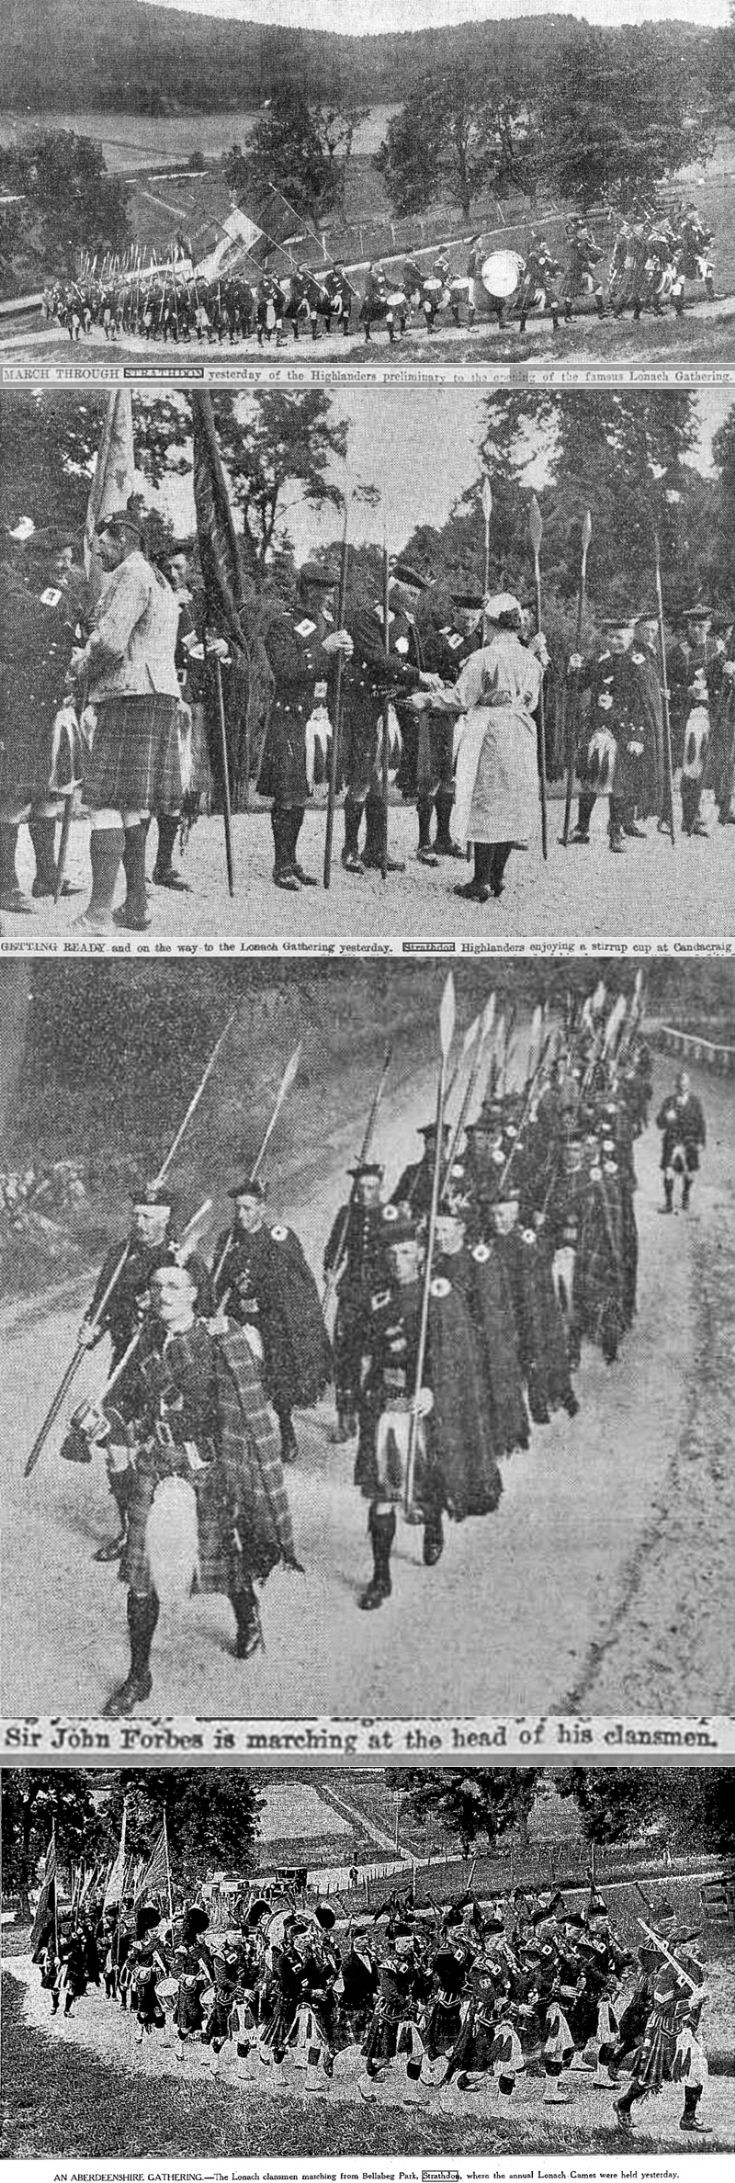 23 Lonach Marchers 1930 - 1934